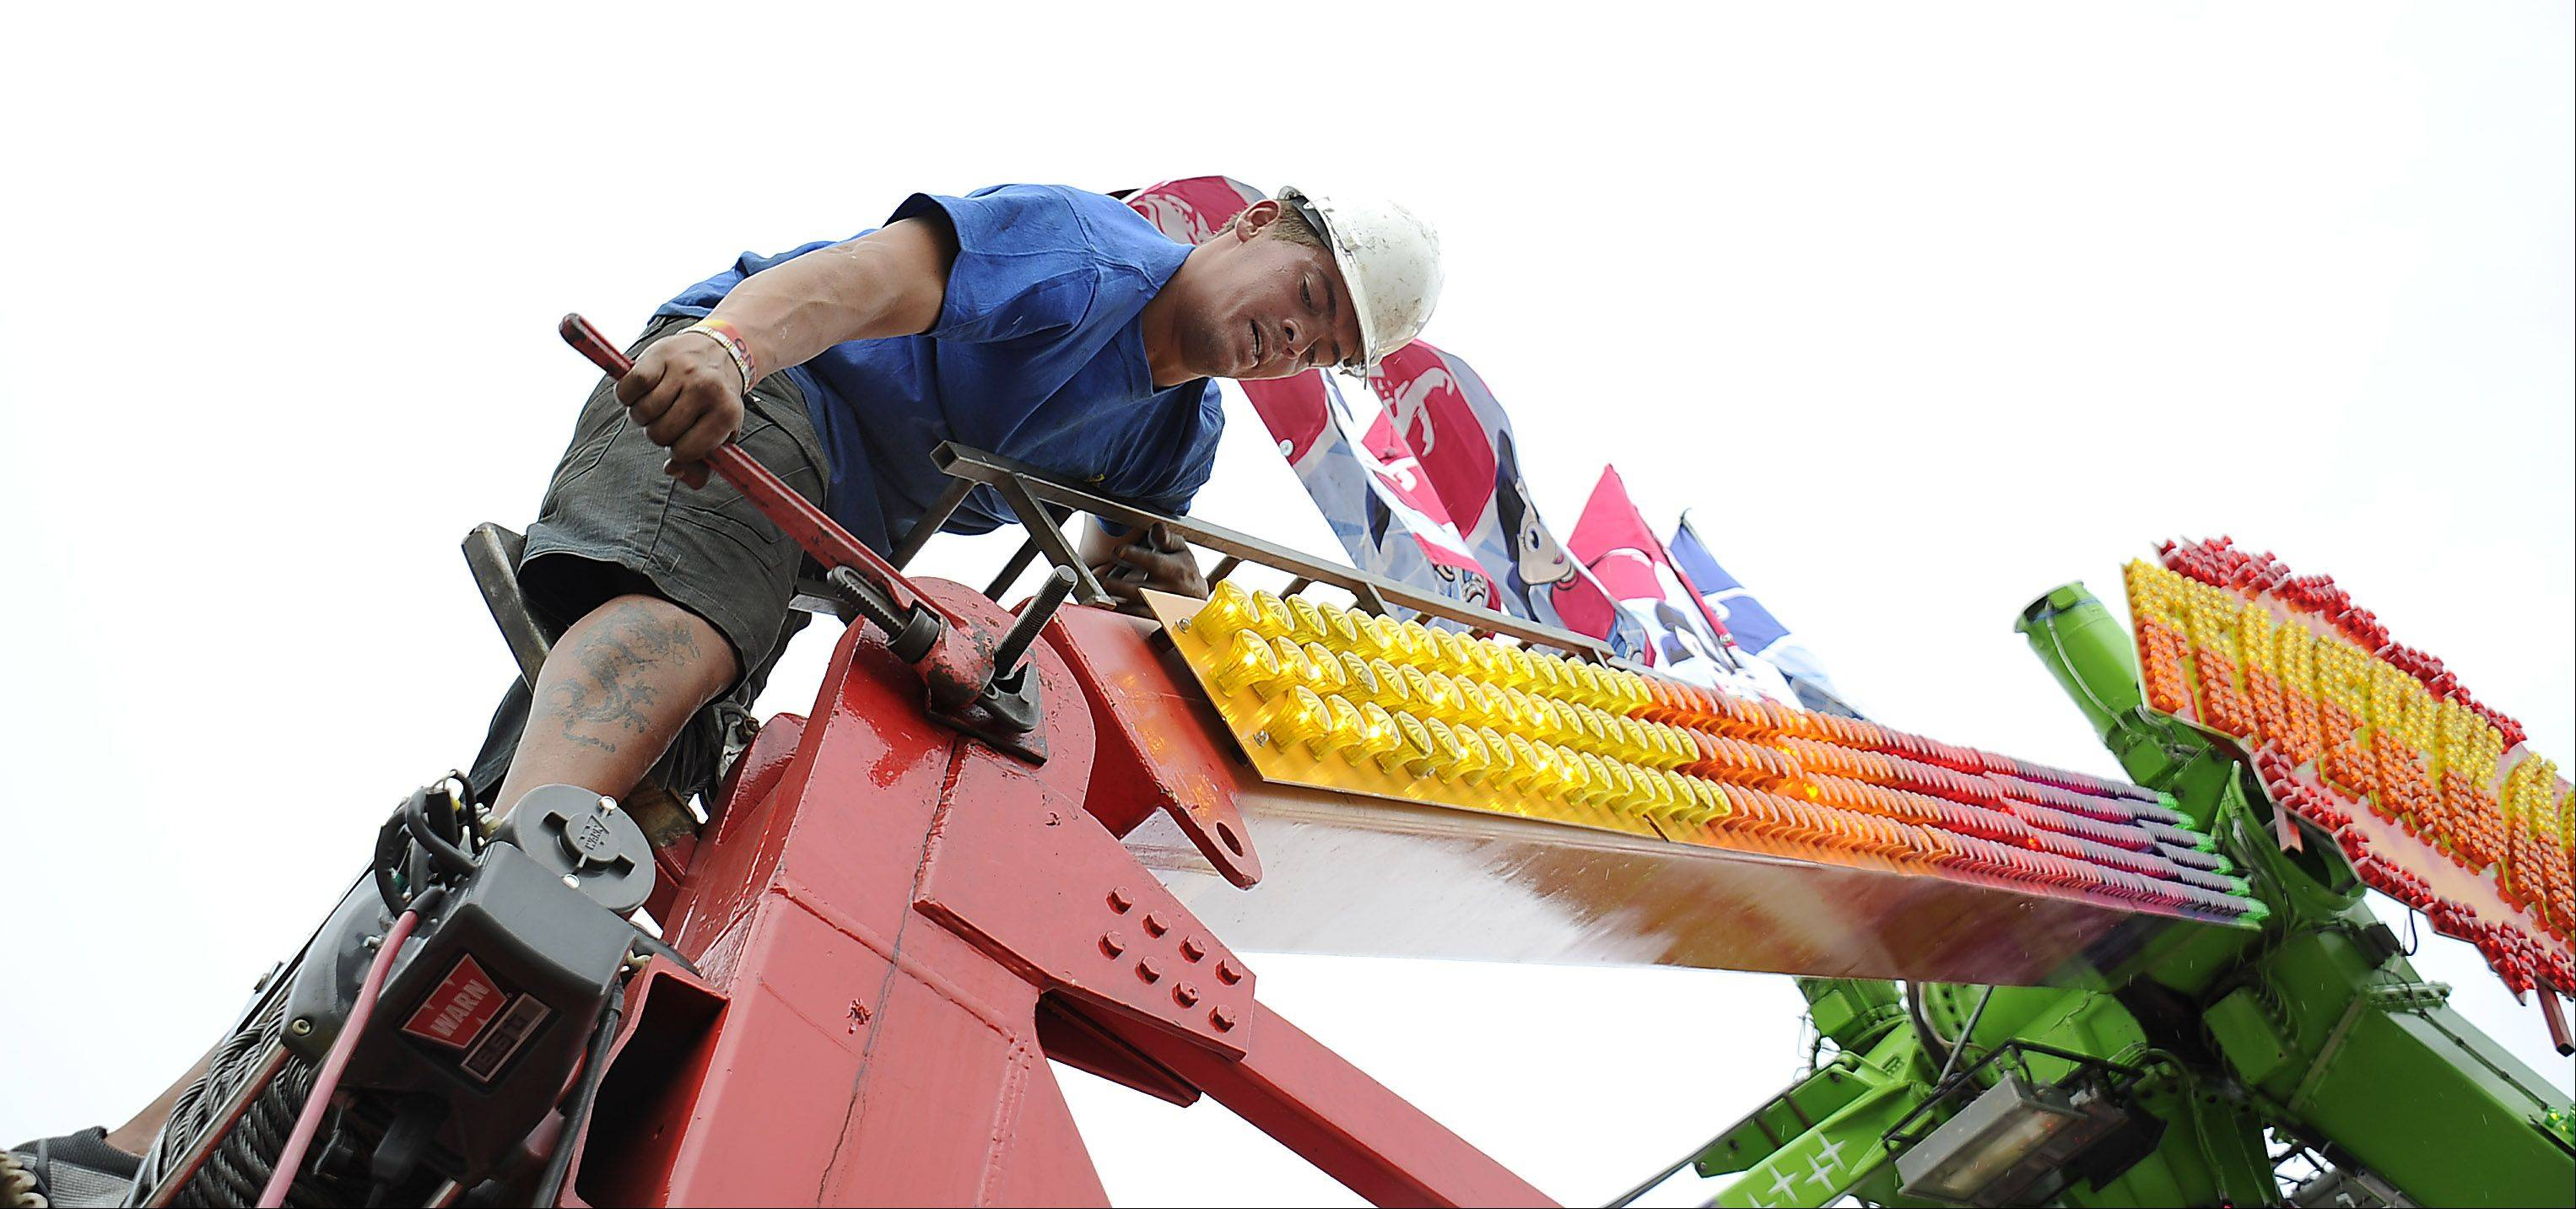 Jaundre Thompson of Johannesburg, South Africa wrenches a nut and bolt into place at the Frontier Days carnival.